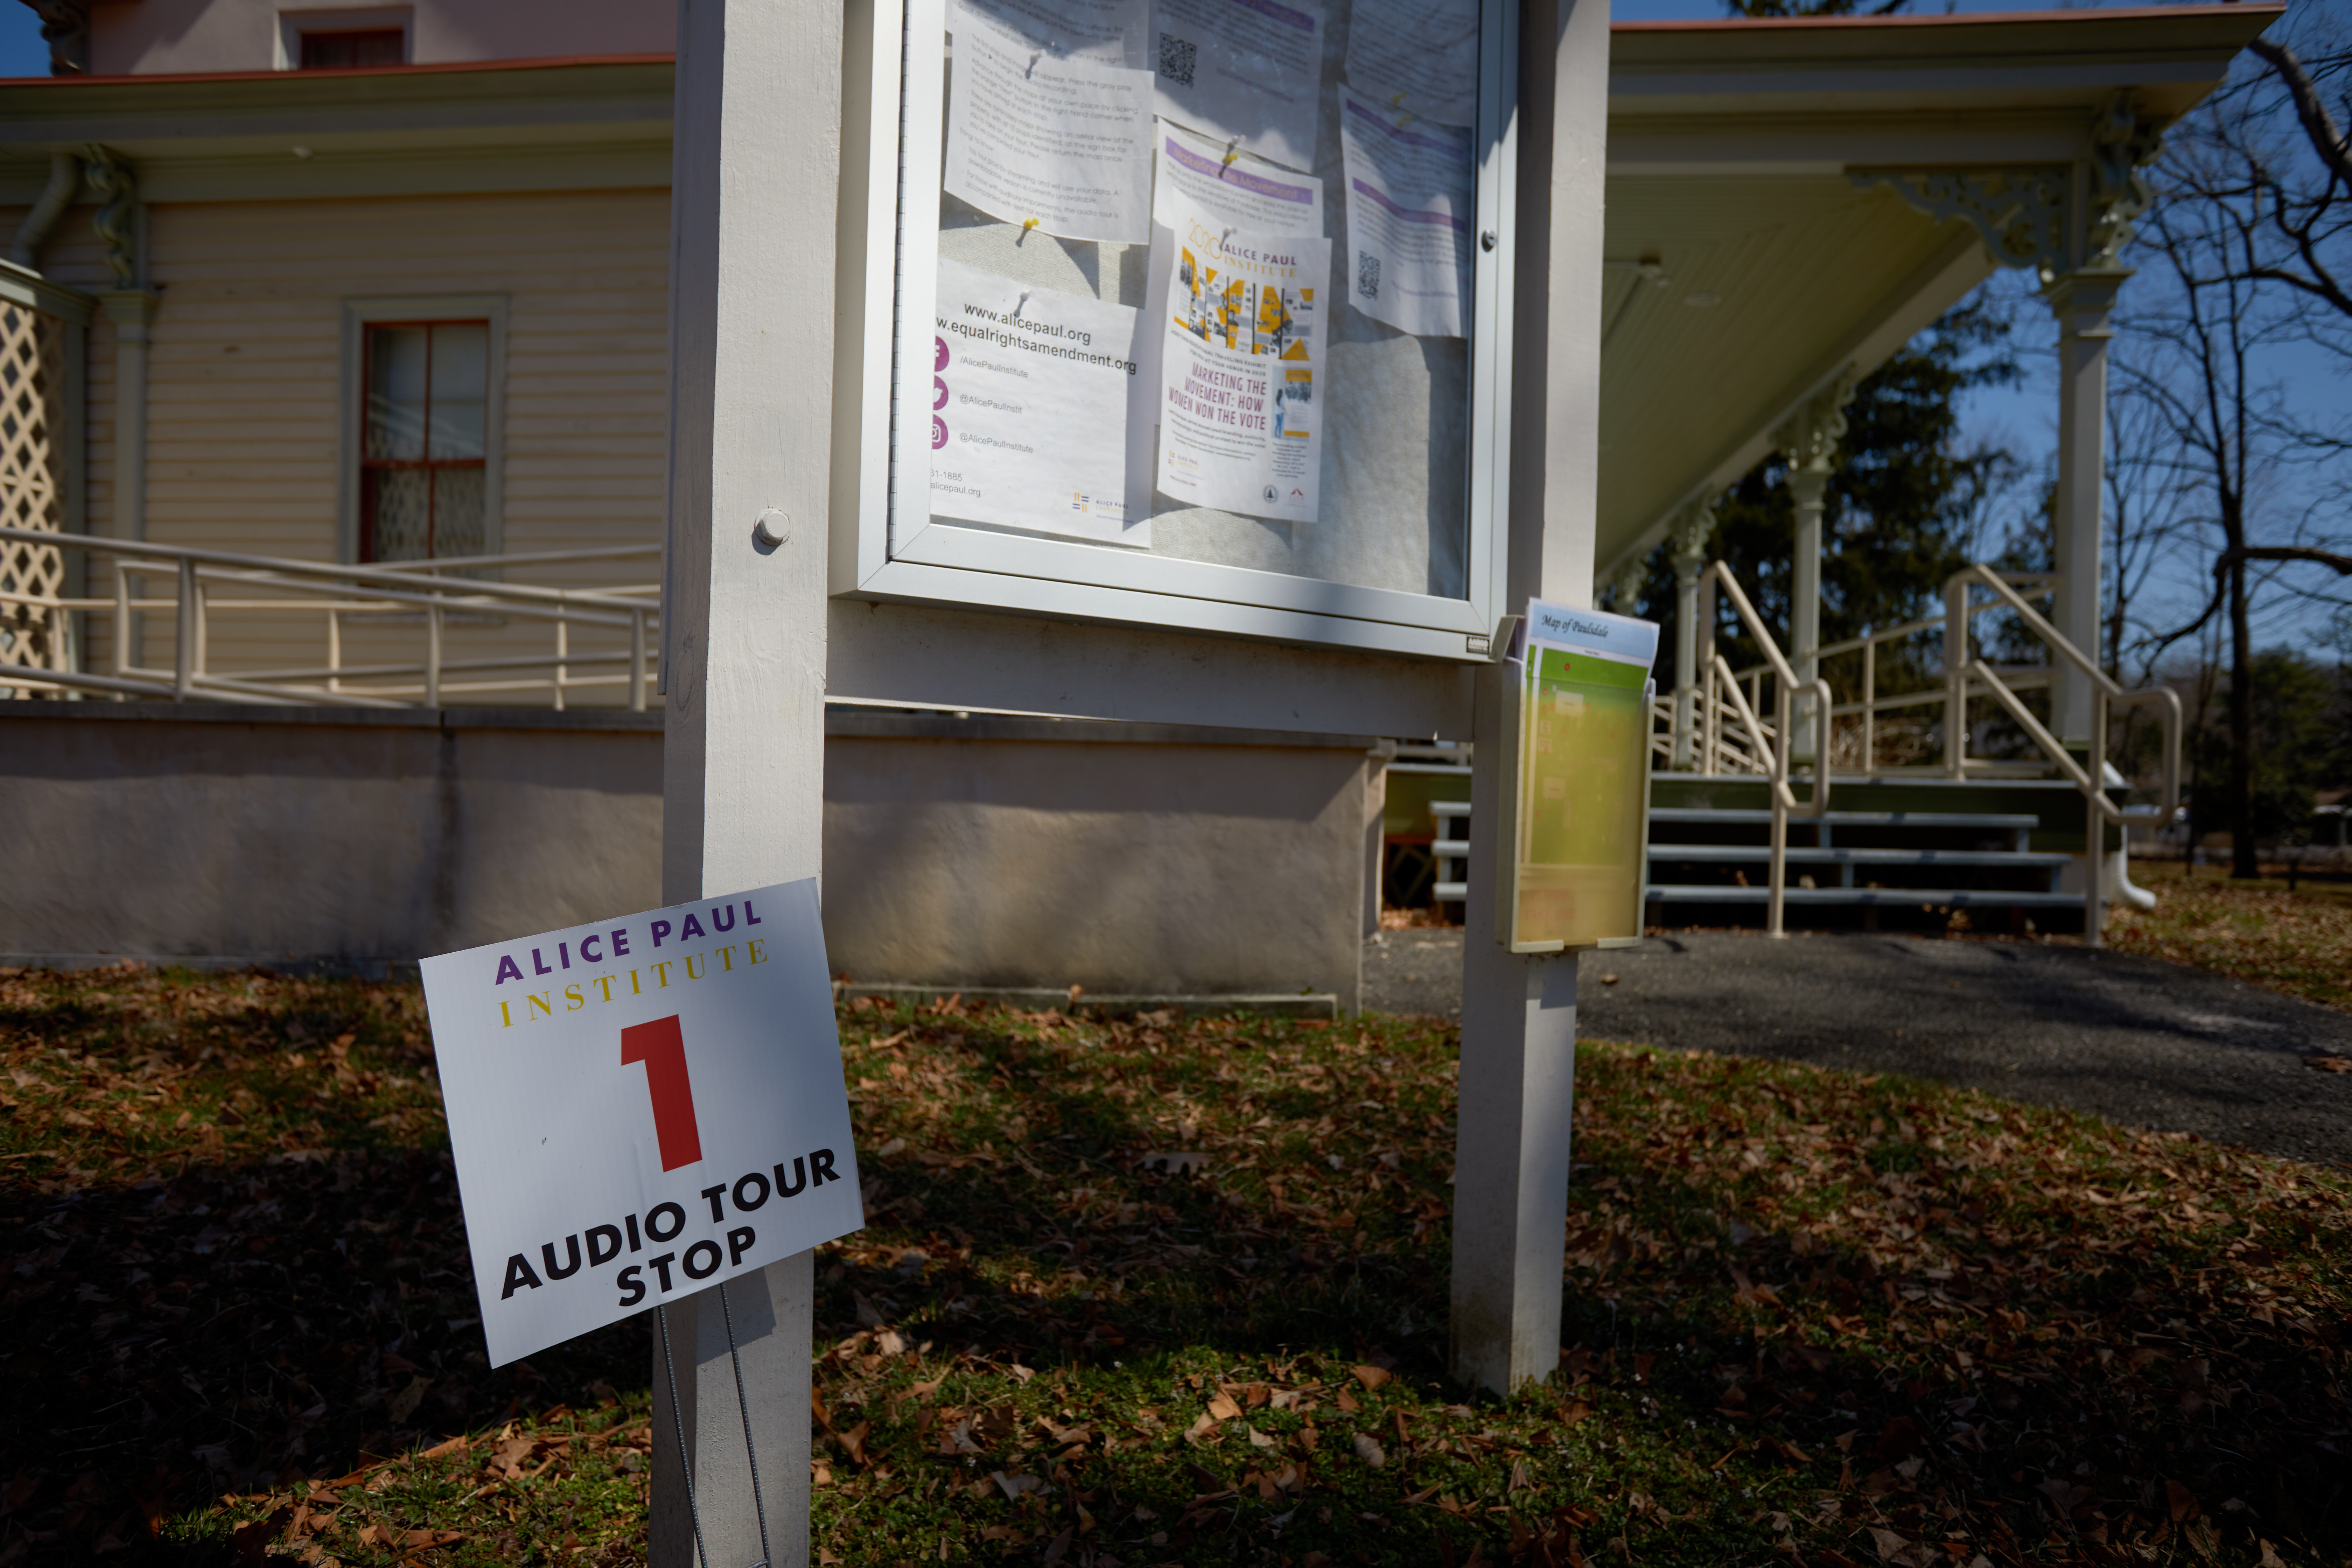 Signage outside Paulsdale mansion, with a small cardboard sign on lawn that says AUDIO TOUR STOP 1.